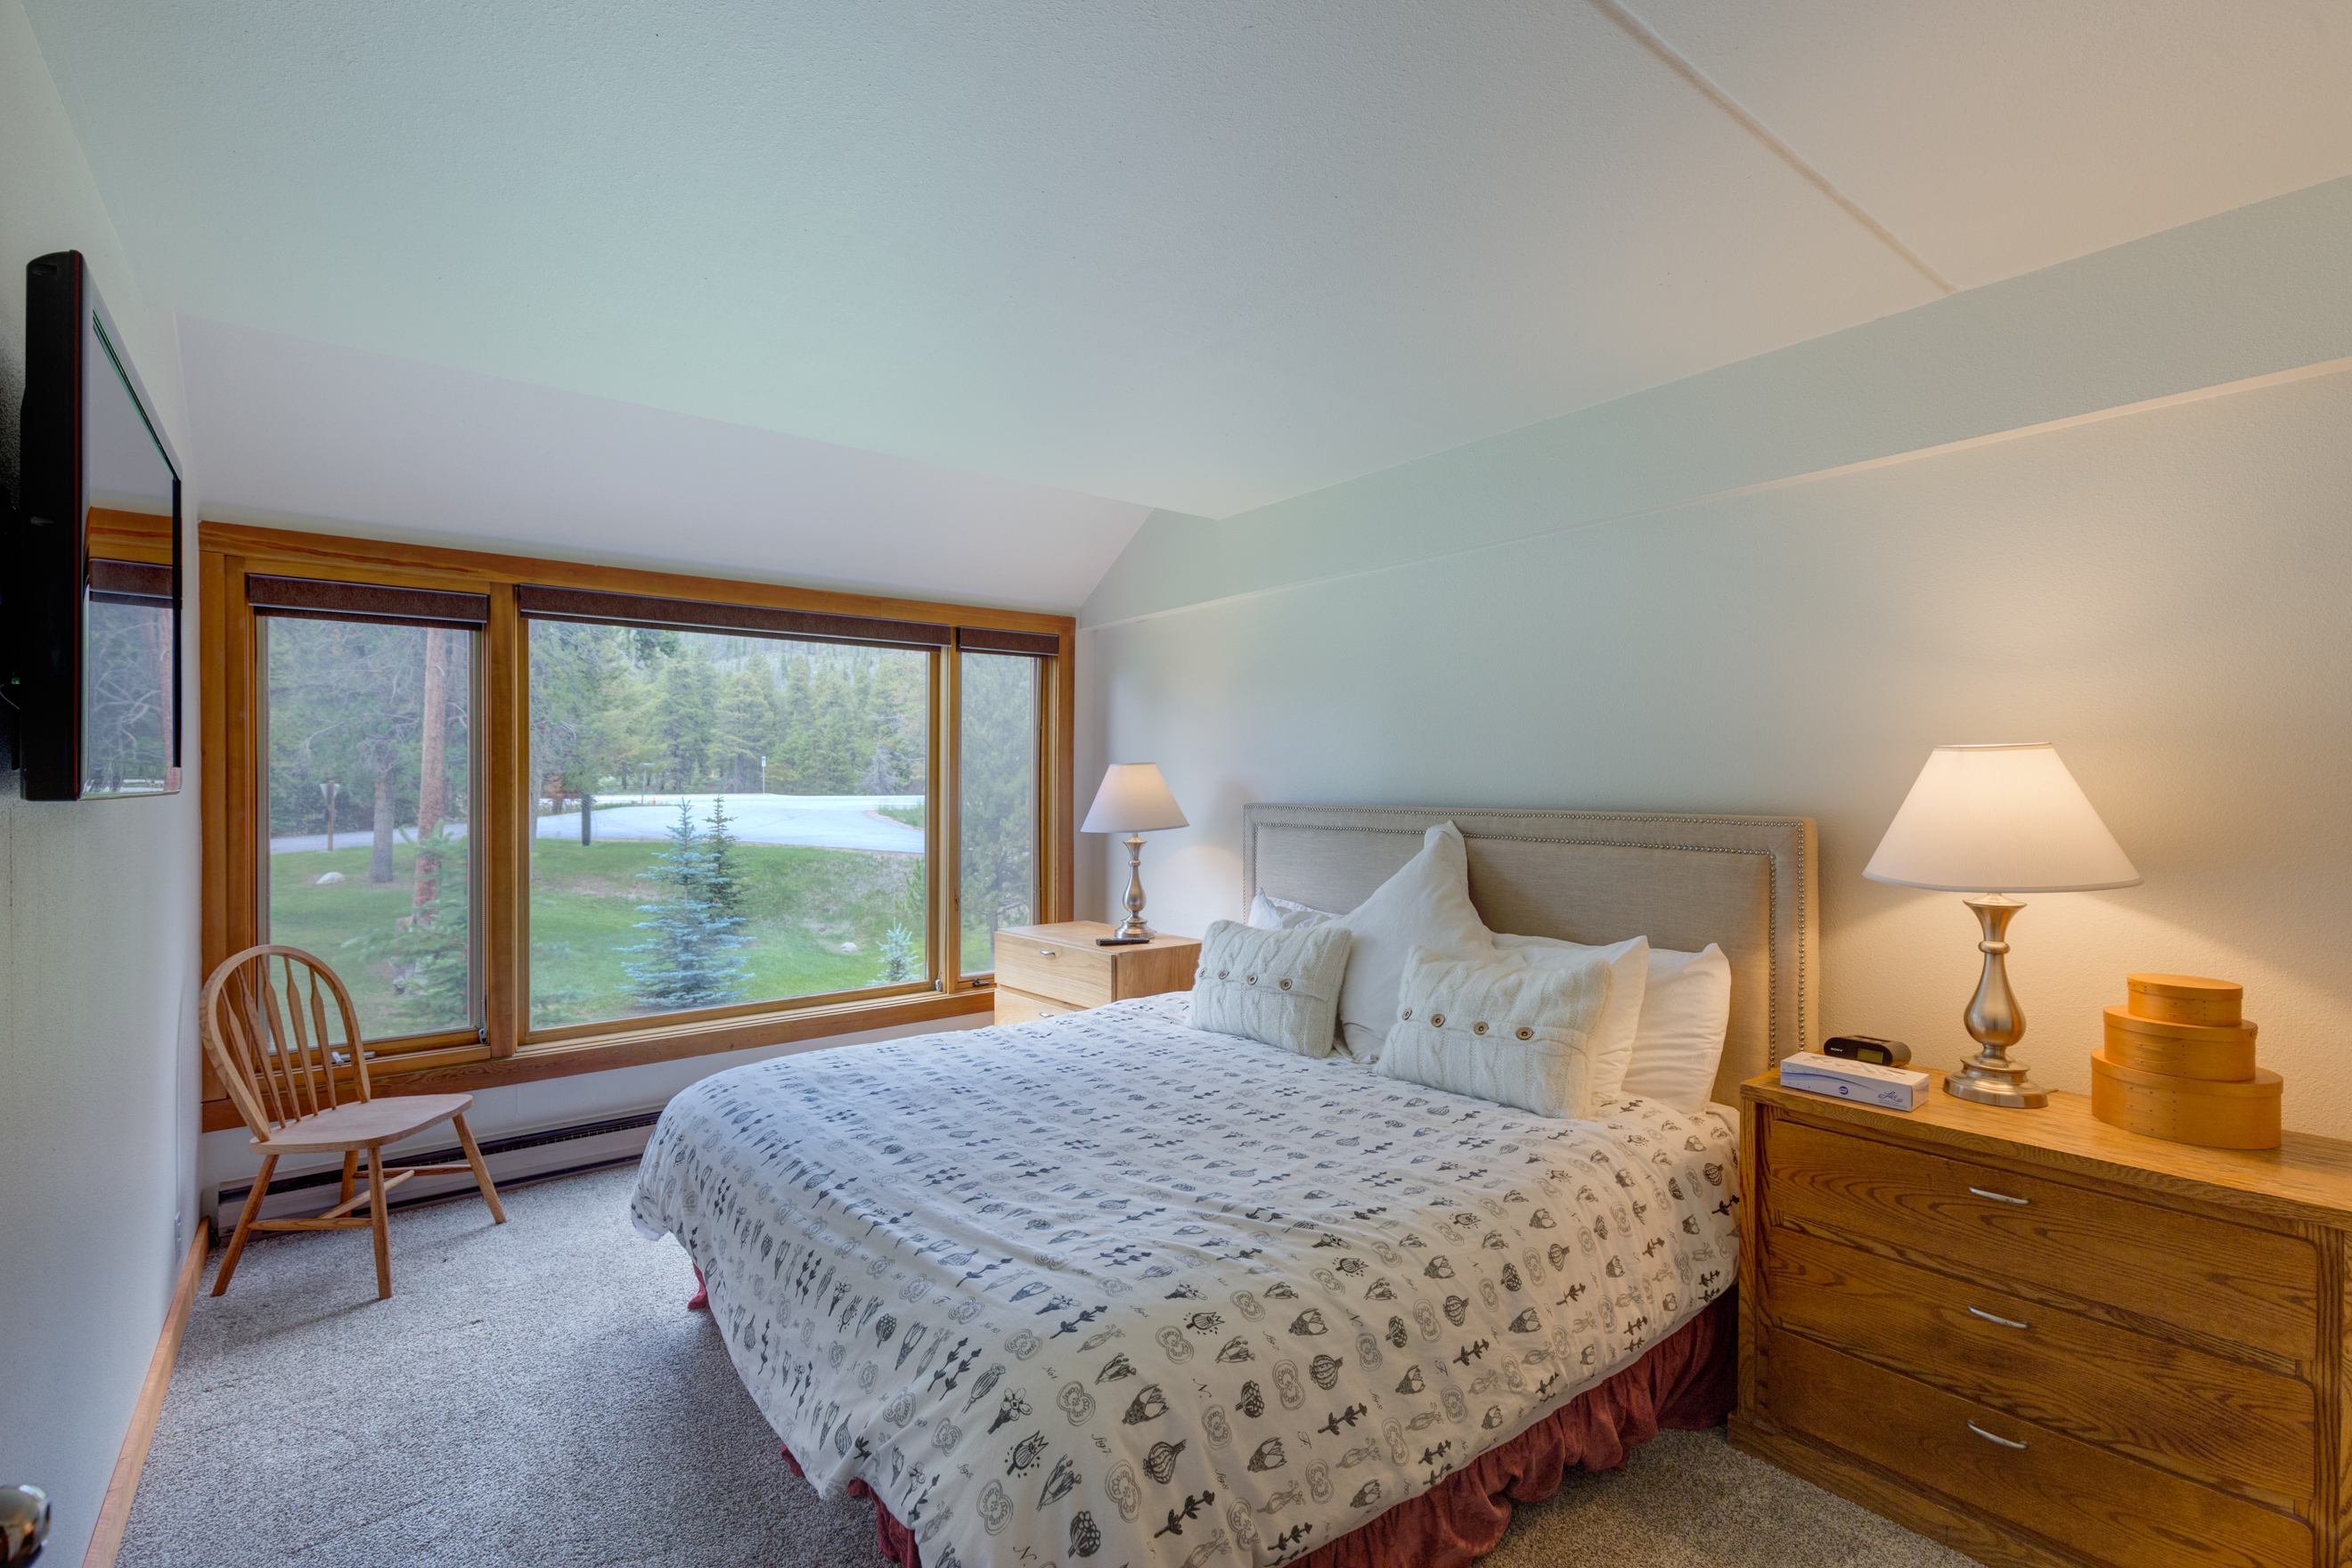 The third guest bedroom features a king-sized bed, large windows and a mounted flat screen TV.